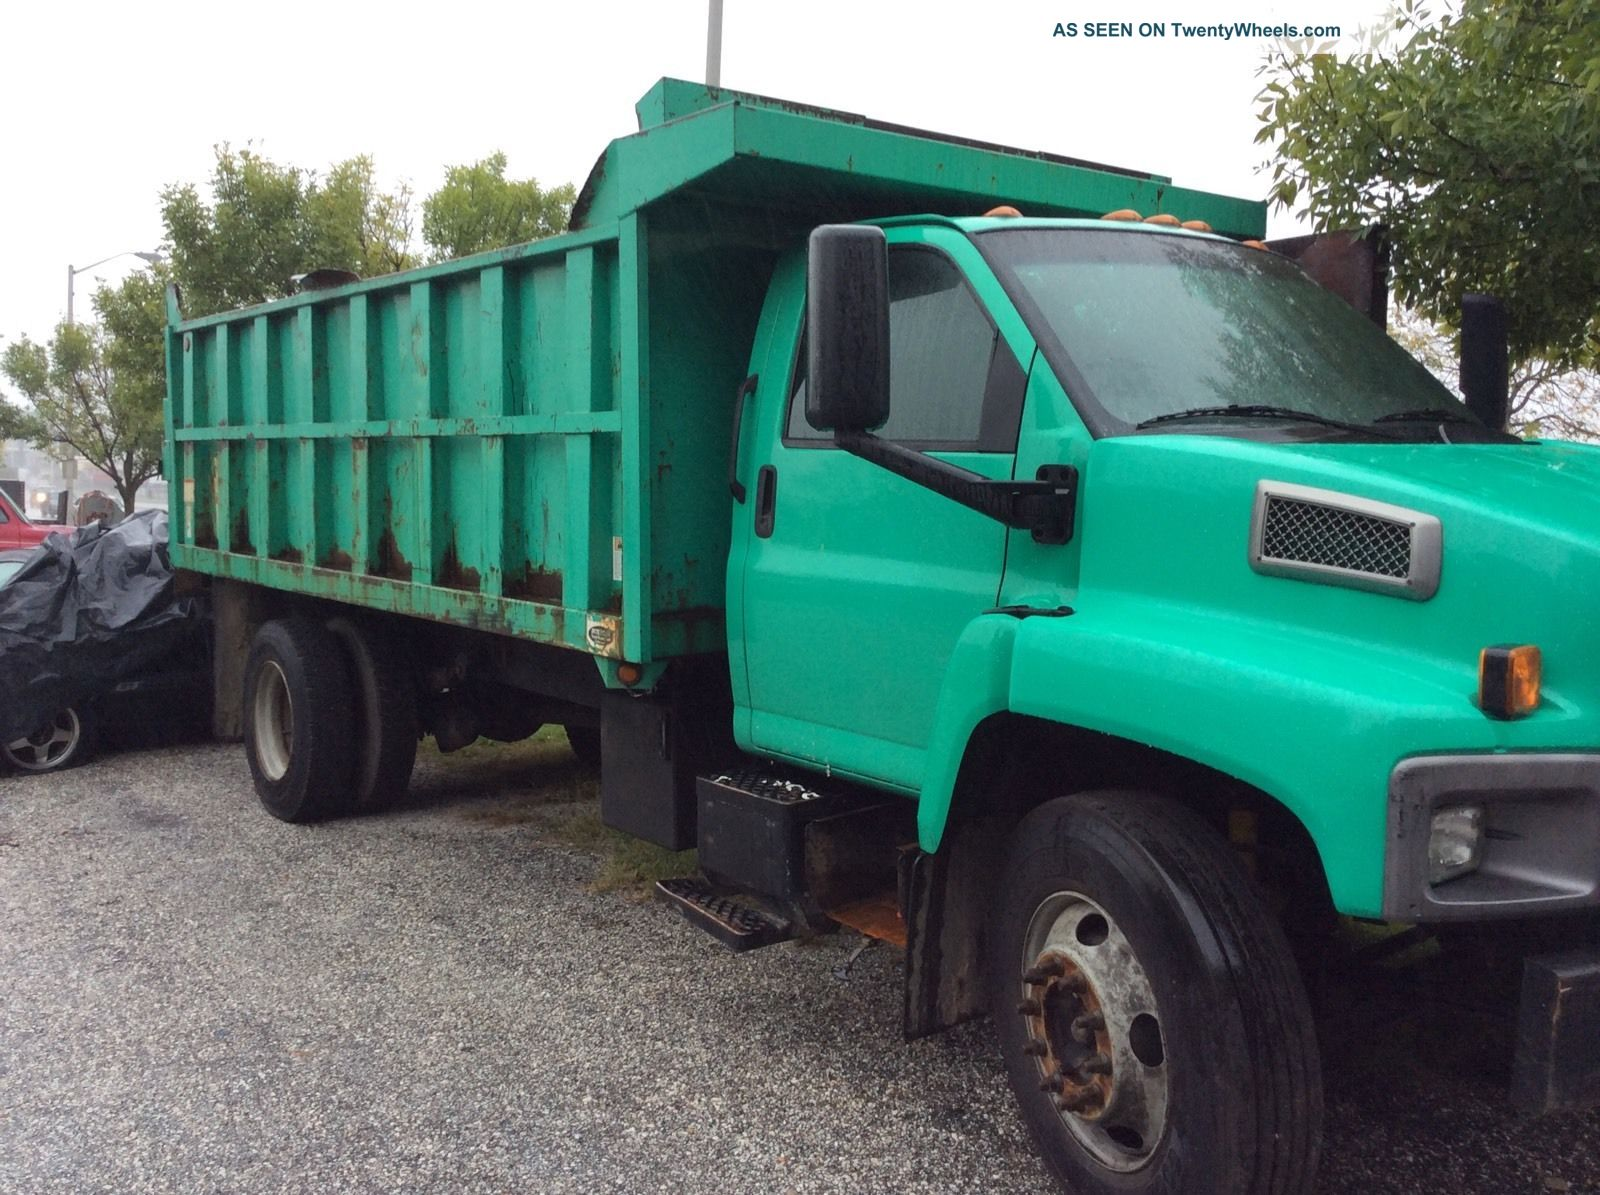 2004 Chevrolet C7500 Long Bed Dump Truck With Lift Gate And